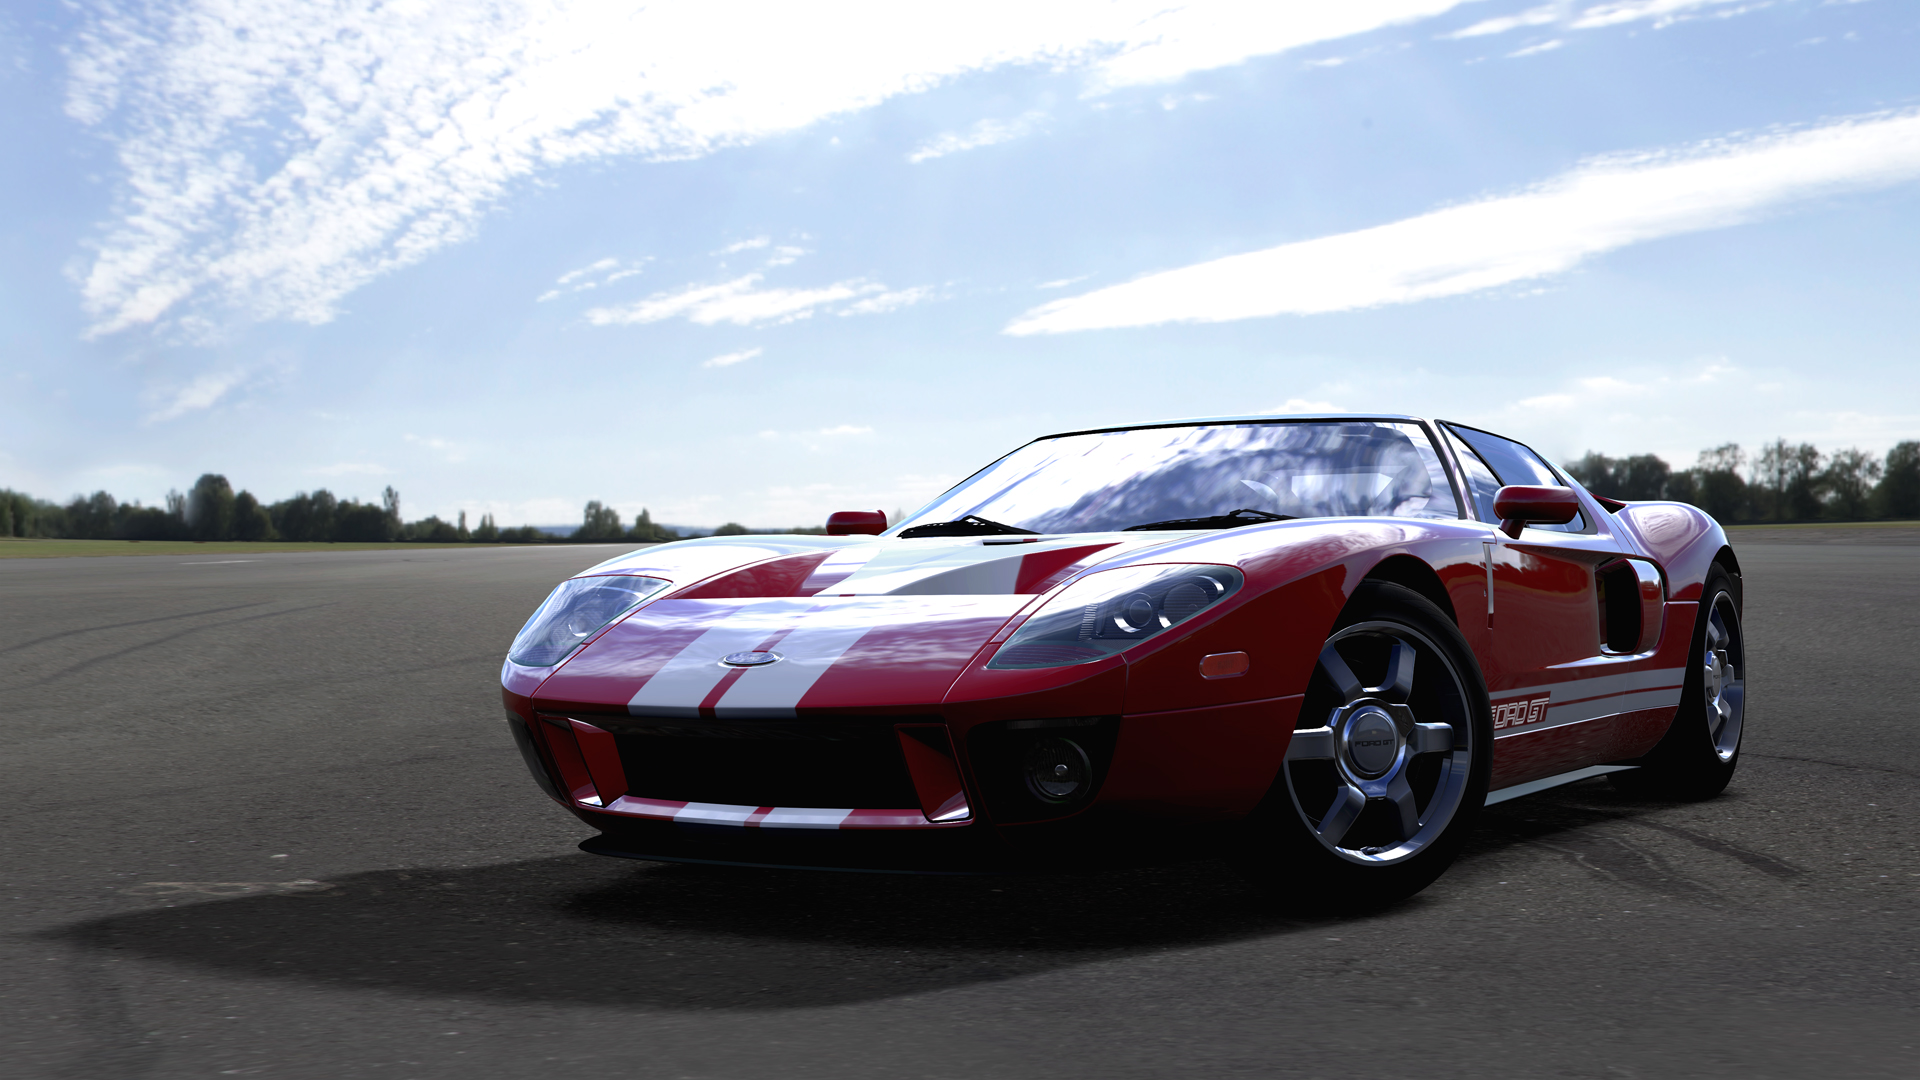 Forza Motorsport 6 Ford GT HD desktop Wallpapers digitalhintnet 1920x1080